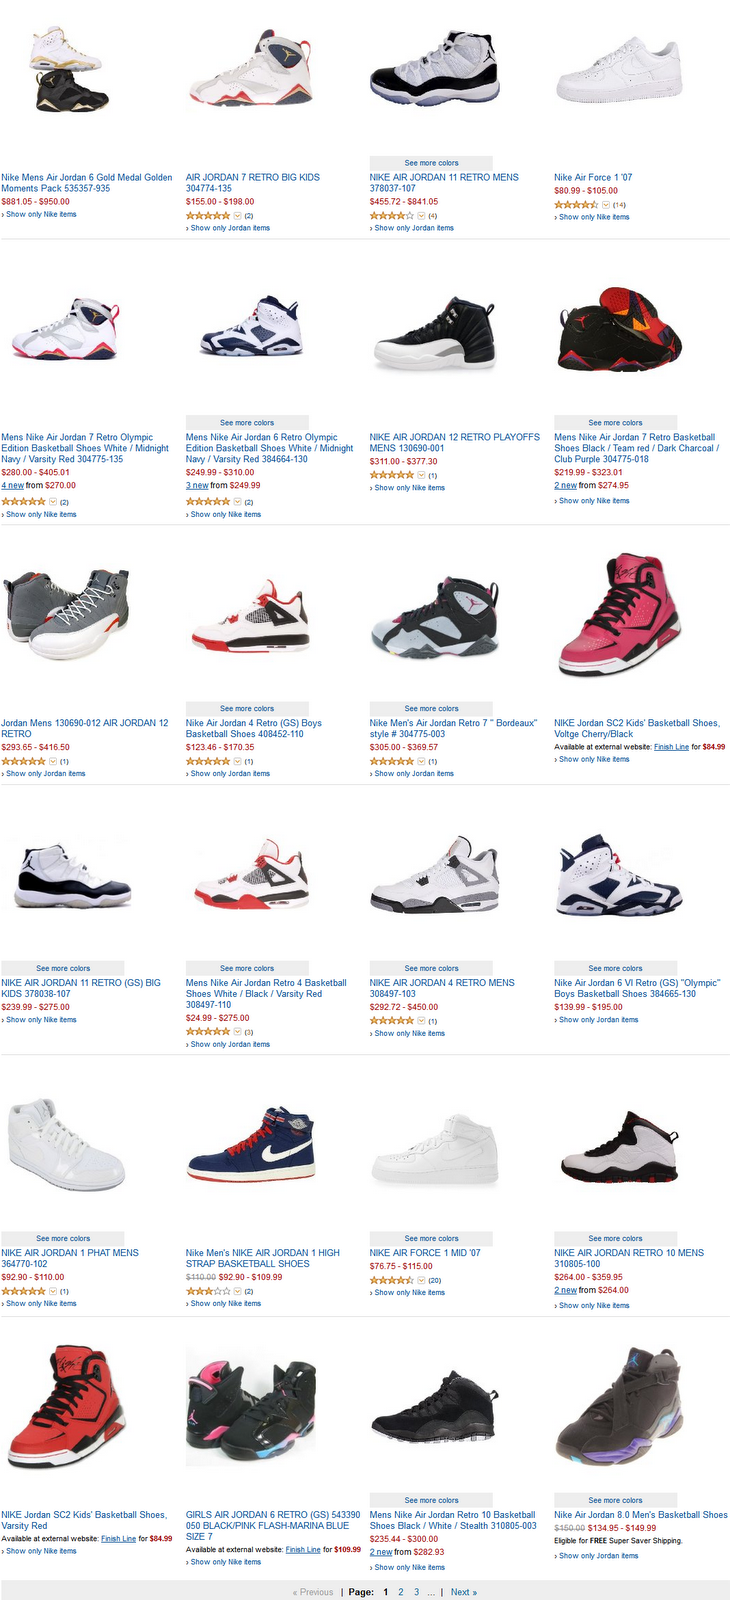 Jordan Shoe Wholesale Price